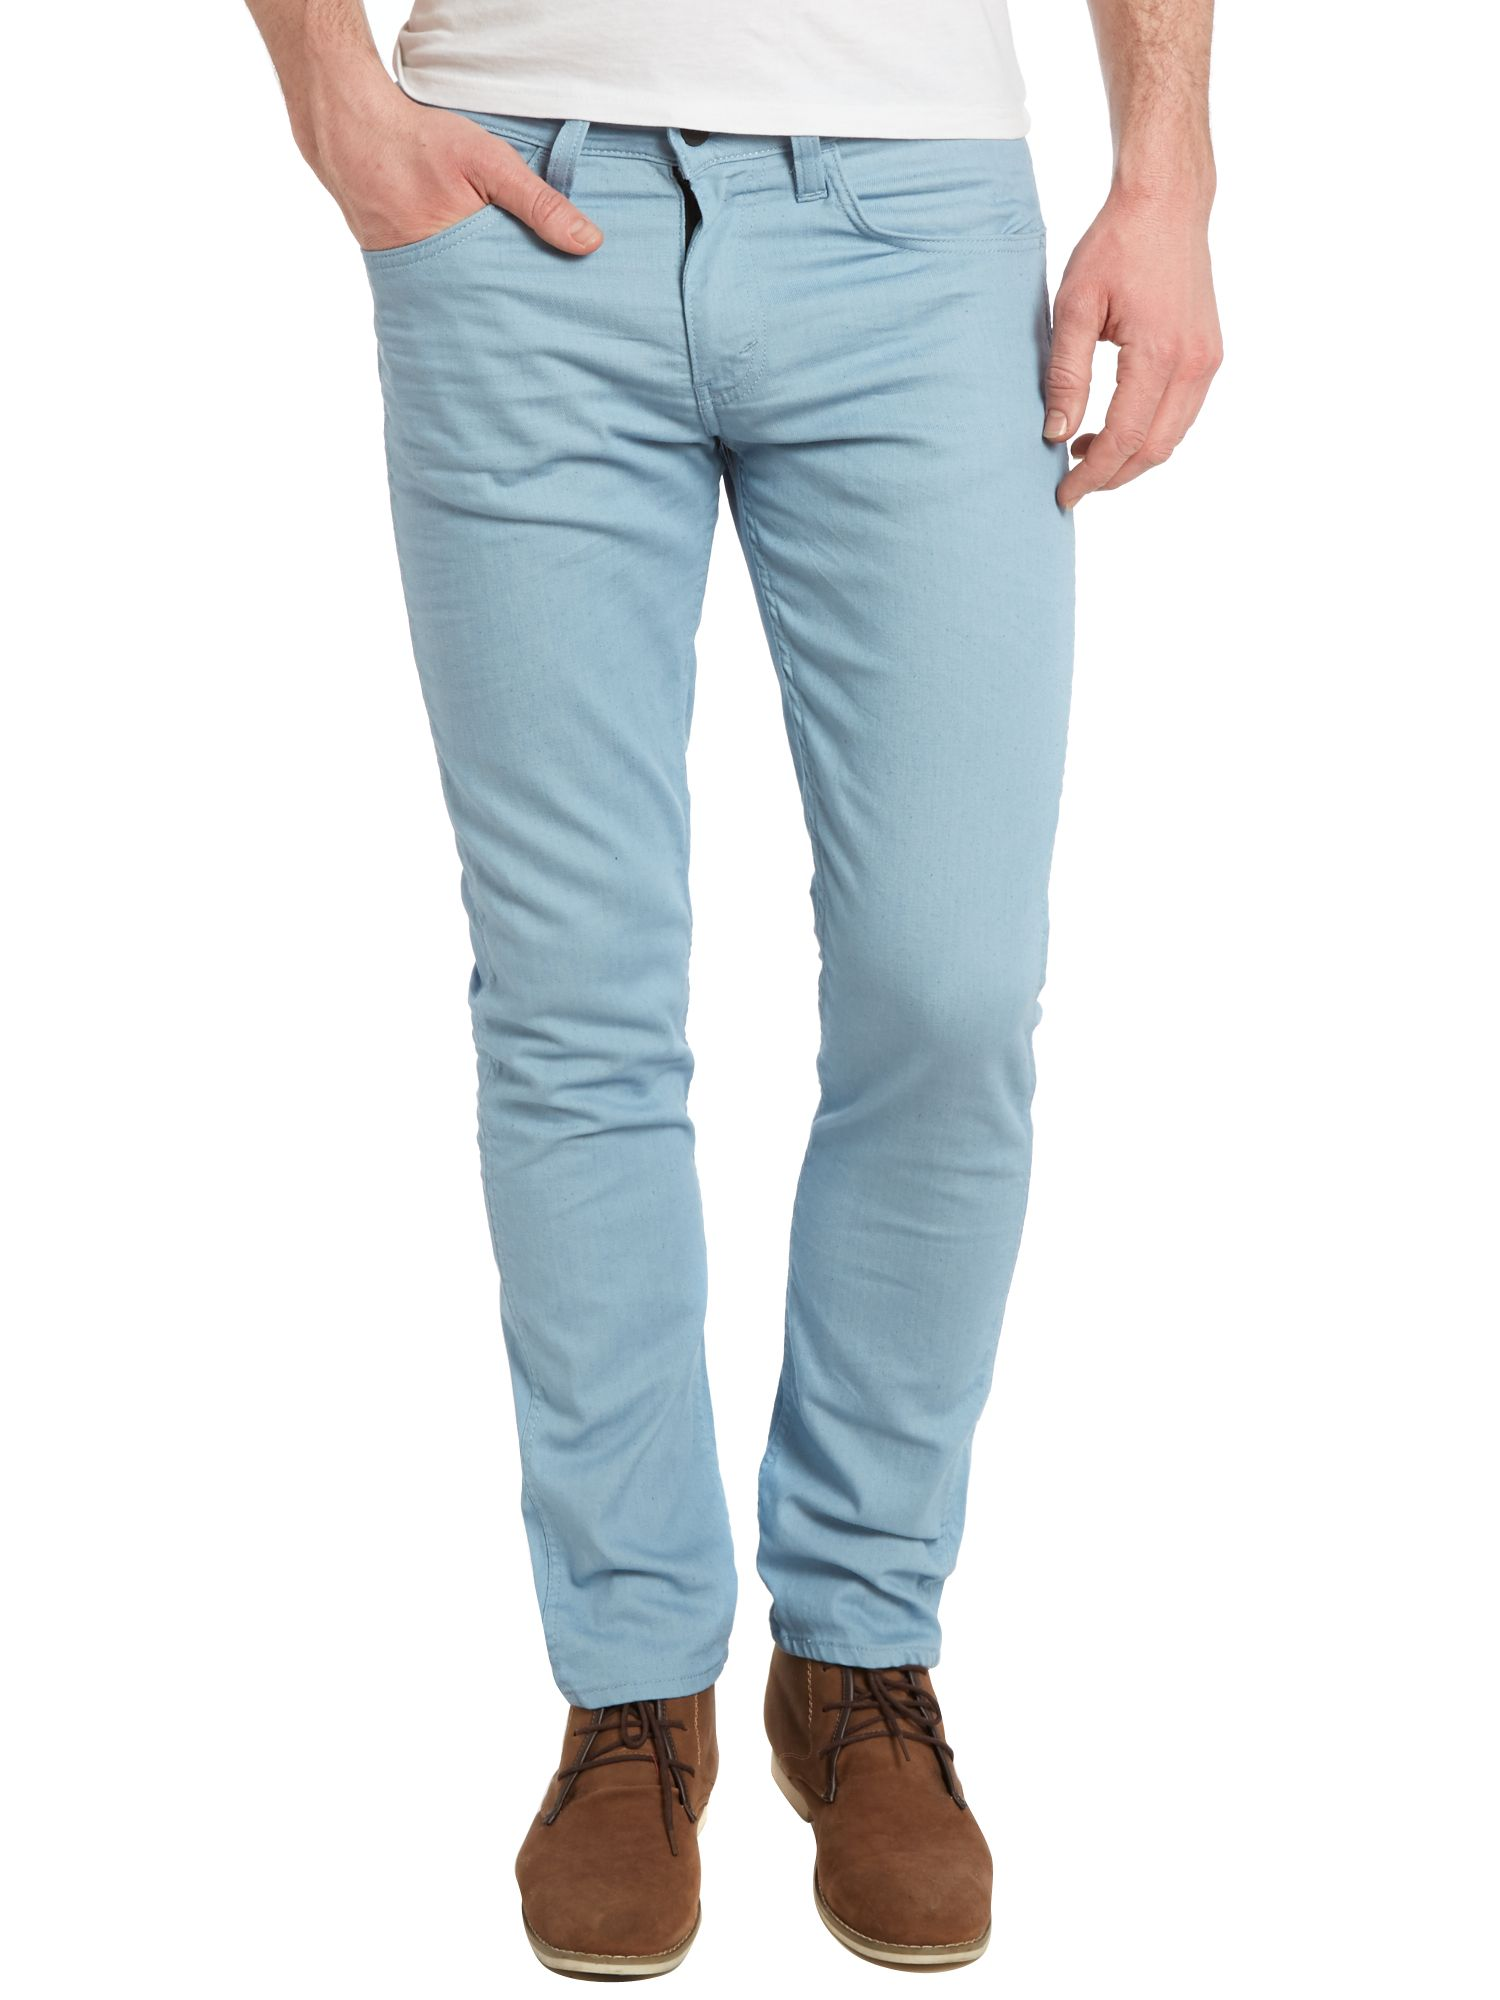 Line 8 511 lo dip wash refined 3d slim fit jean